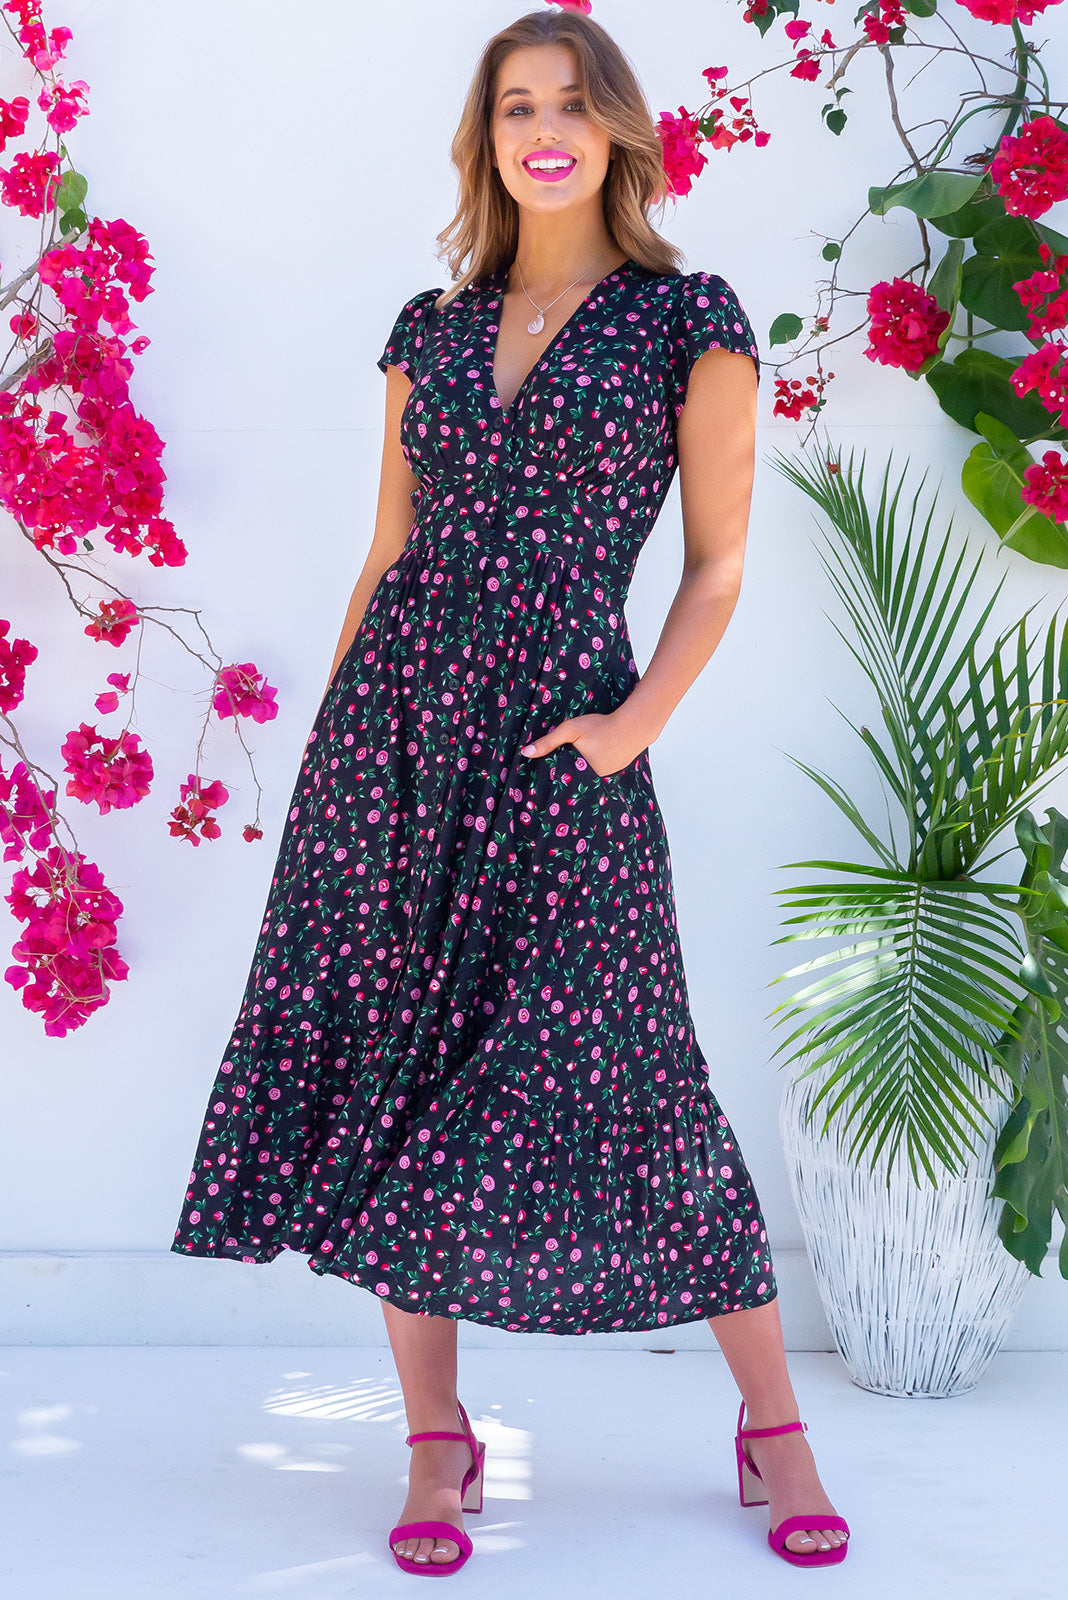 Jude Coco Noir Dress button front vintage inspired date night dress. Black base with rose print on 100% rayon fabric. Features side pockets and cap sleeves.